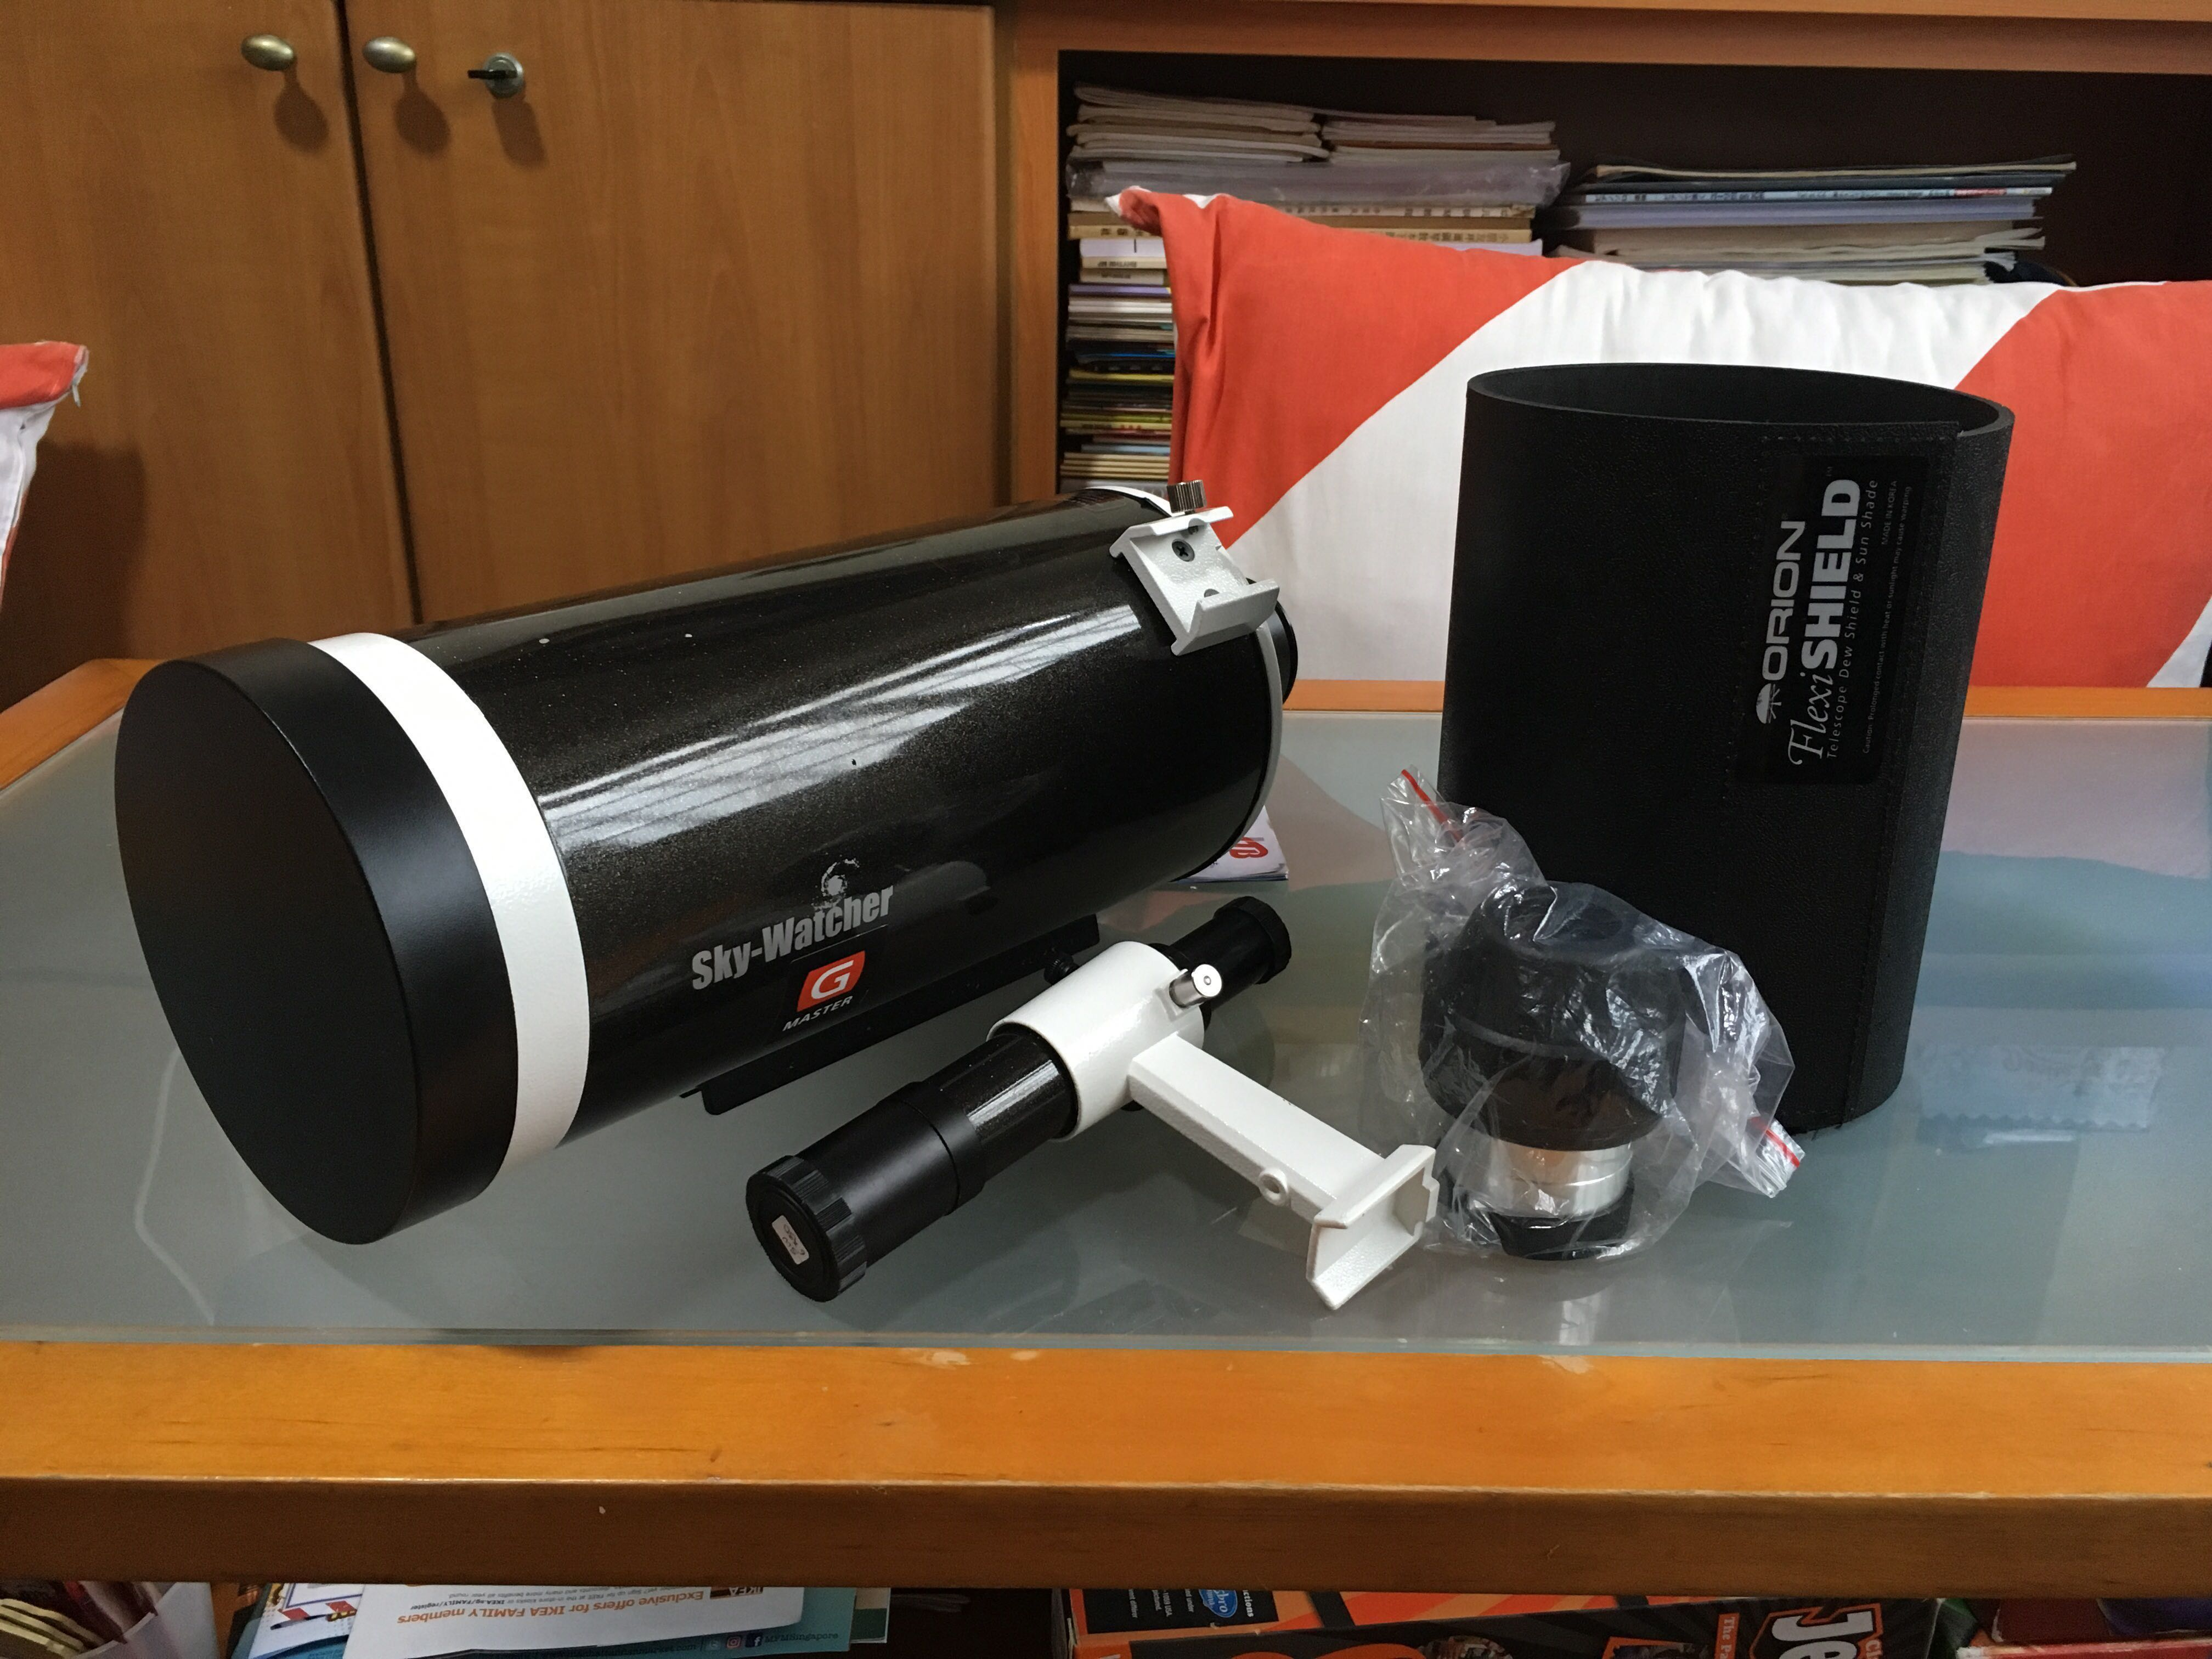 Cheap and good astronomical telescope: 5u201d sky watcher bk127